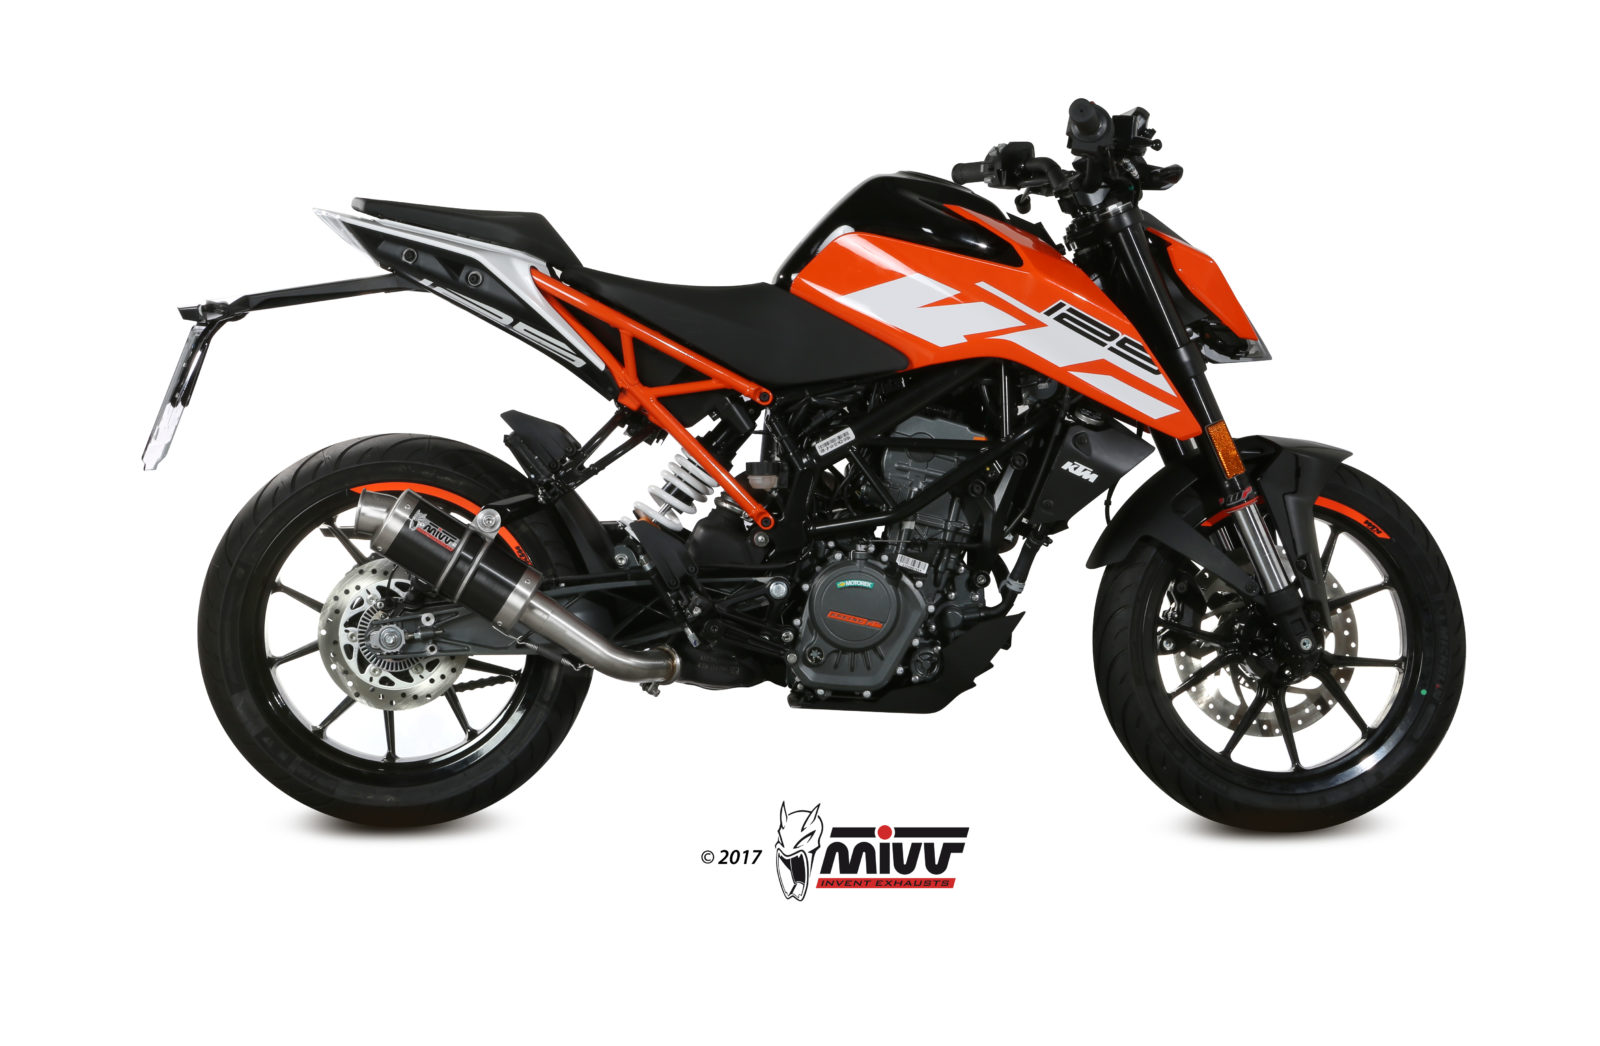 ktm 125 duke exhaust mivv gp carbon mivv. Black Bedroom Furniture Sets. Home Design Ideas